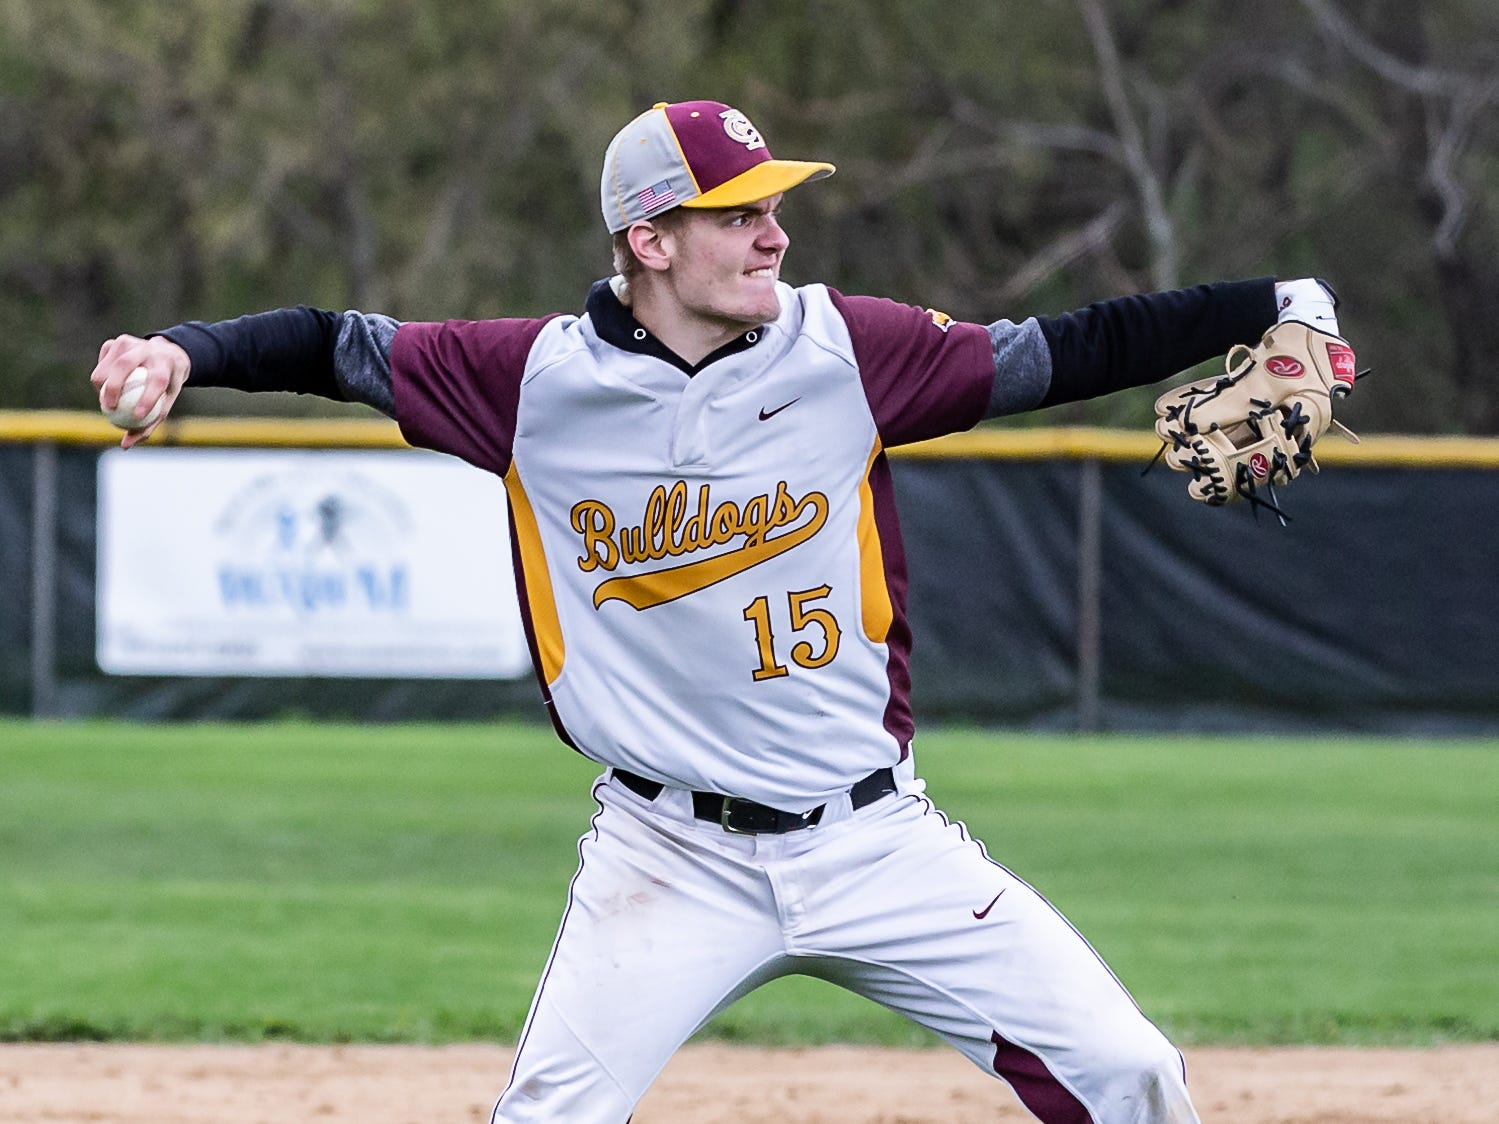 West Allis Central third baseman Cameron Drury (15) takes aim on first during the game at home against Pius XI on Wednesday, May, 8, 2019.